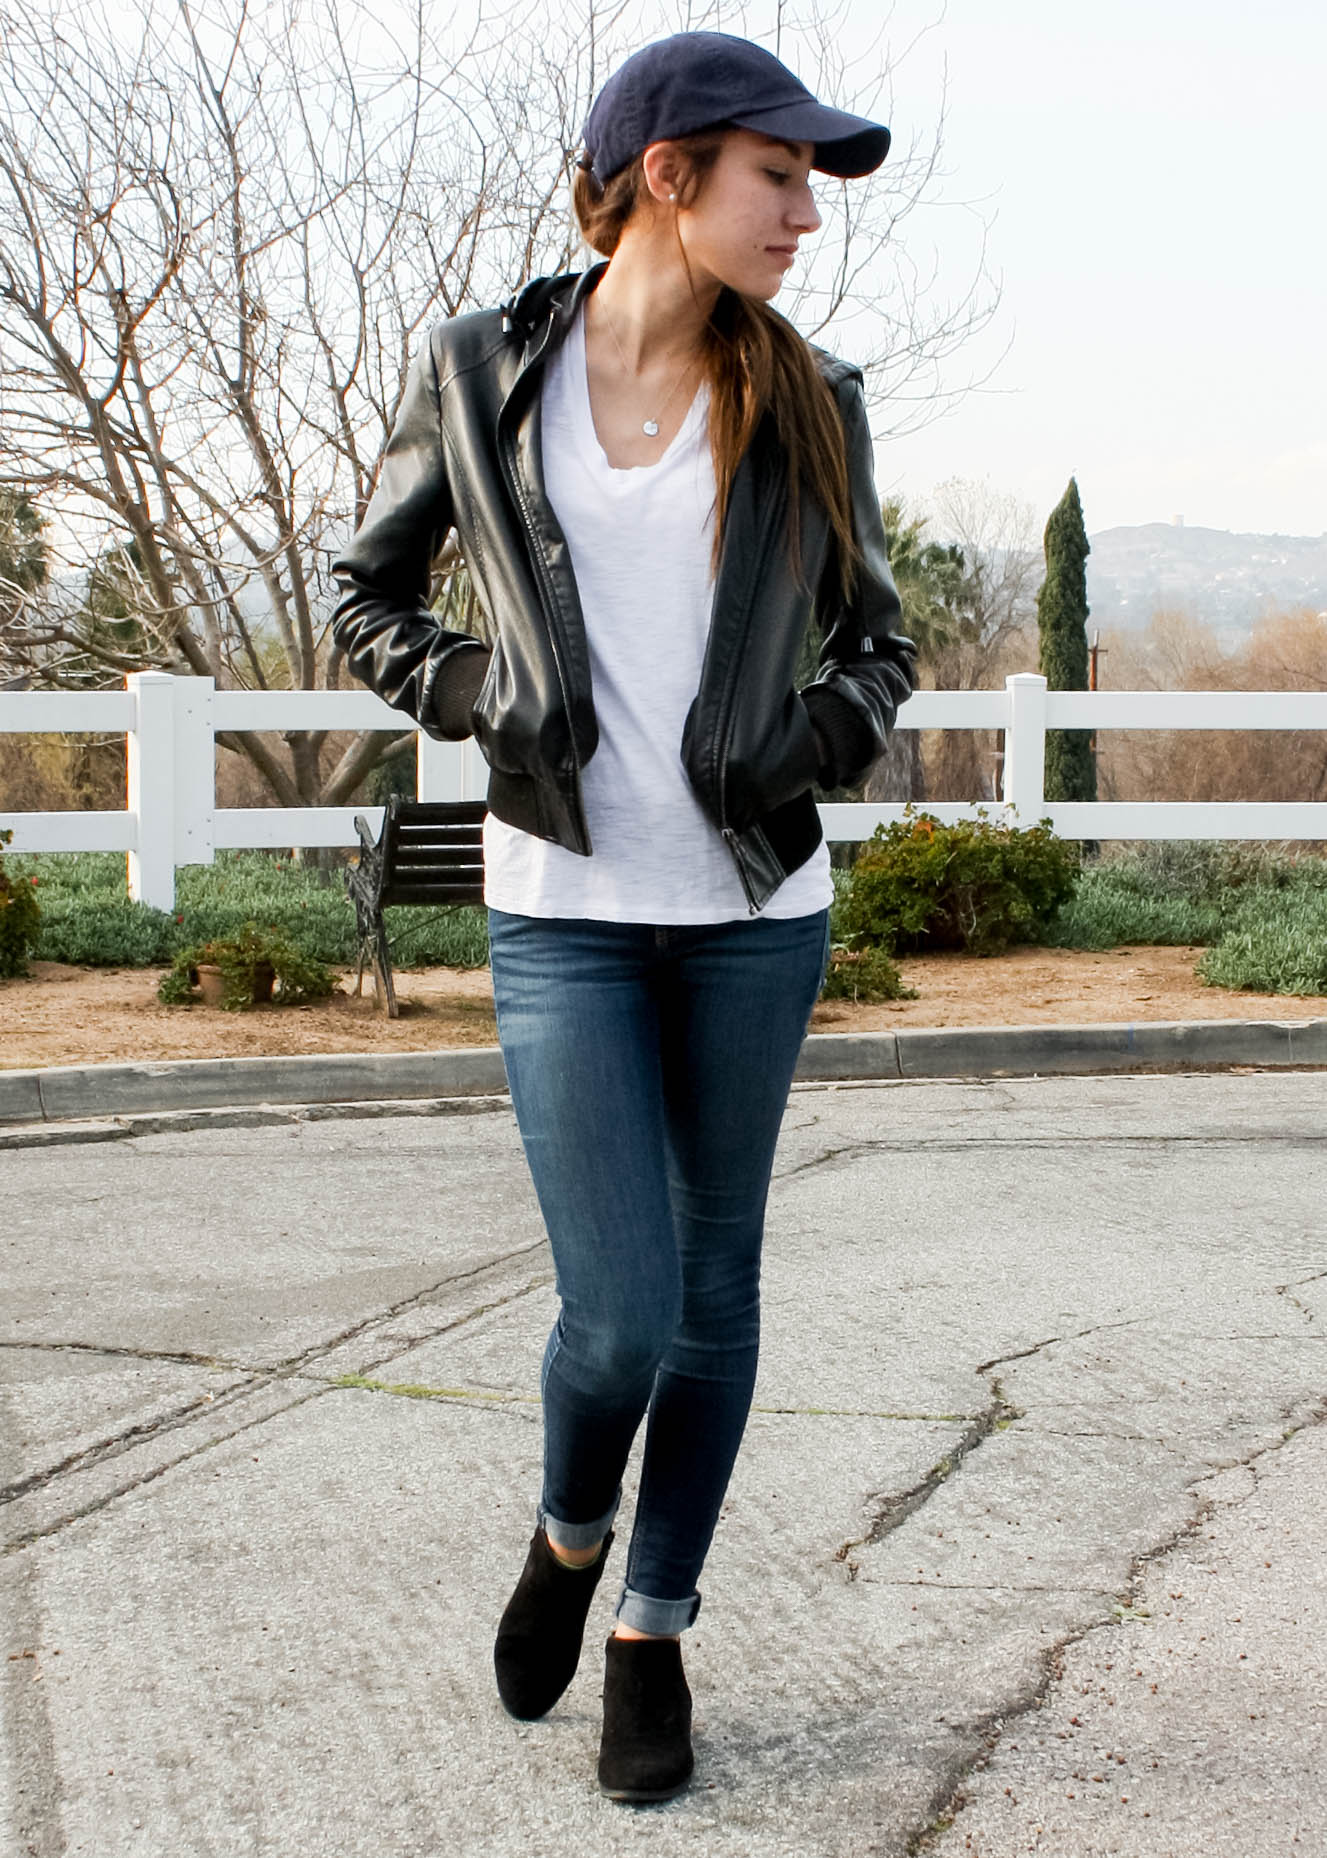 Black Leather Jacket Outfit Inspo